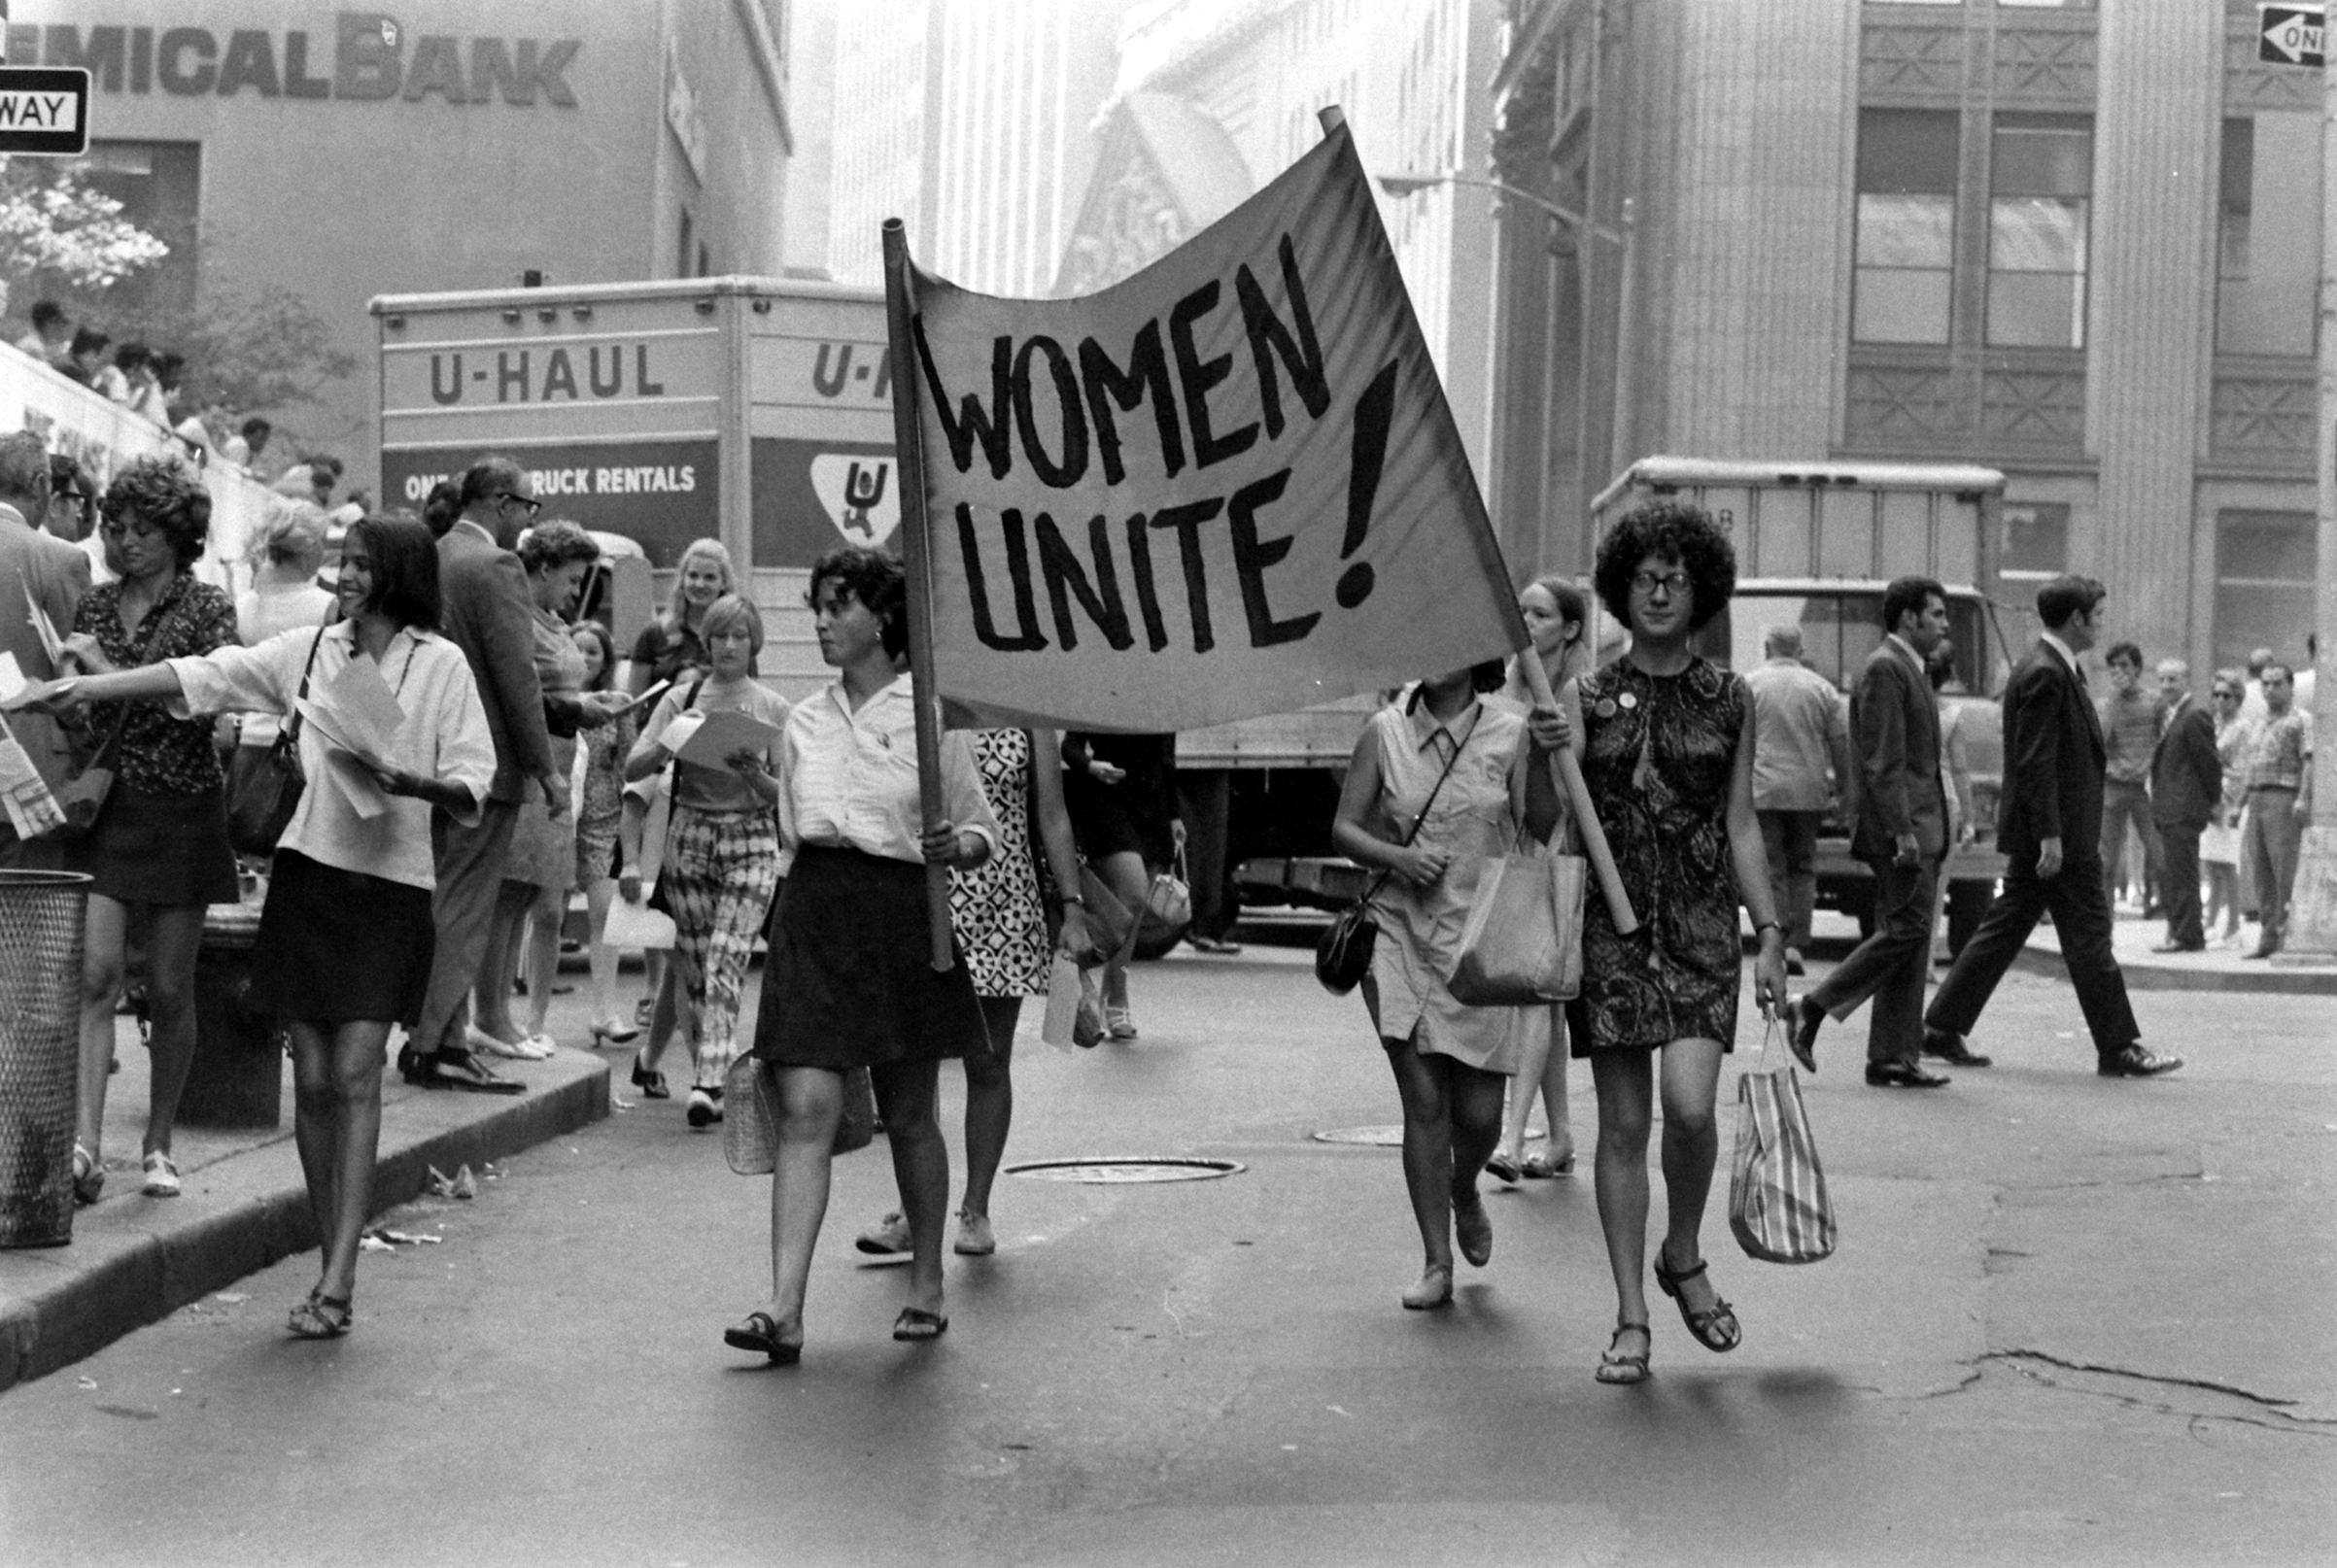 Women marching at the Women's Strike for Equality, New York, N.Y., Aug. 26, 1970.